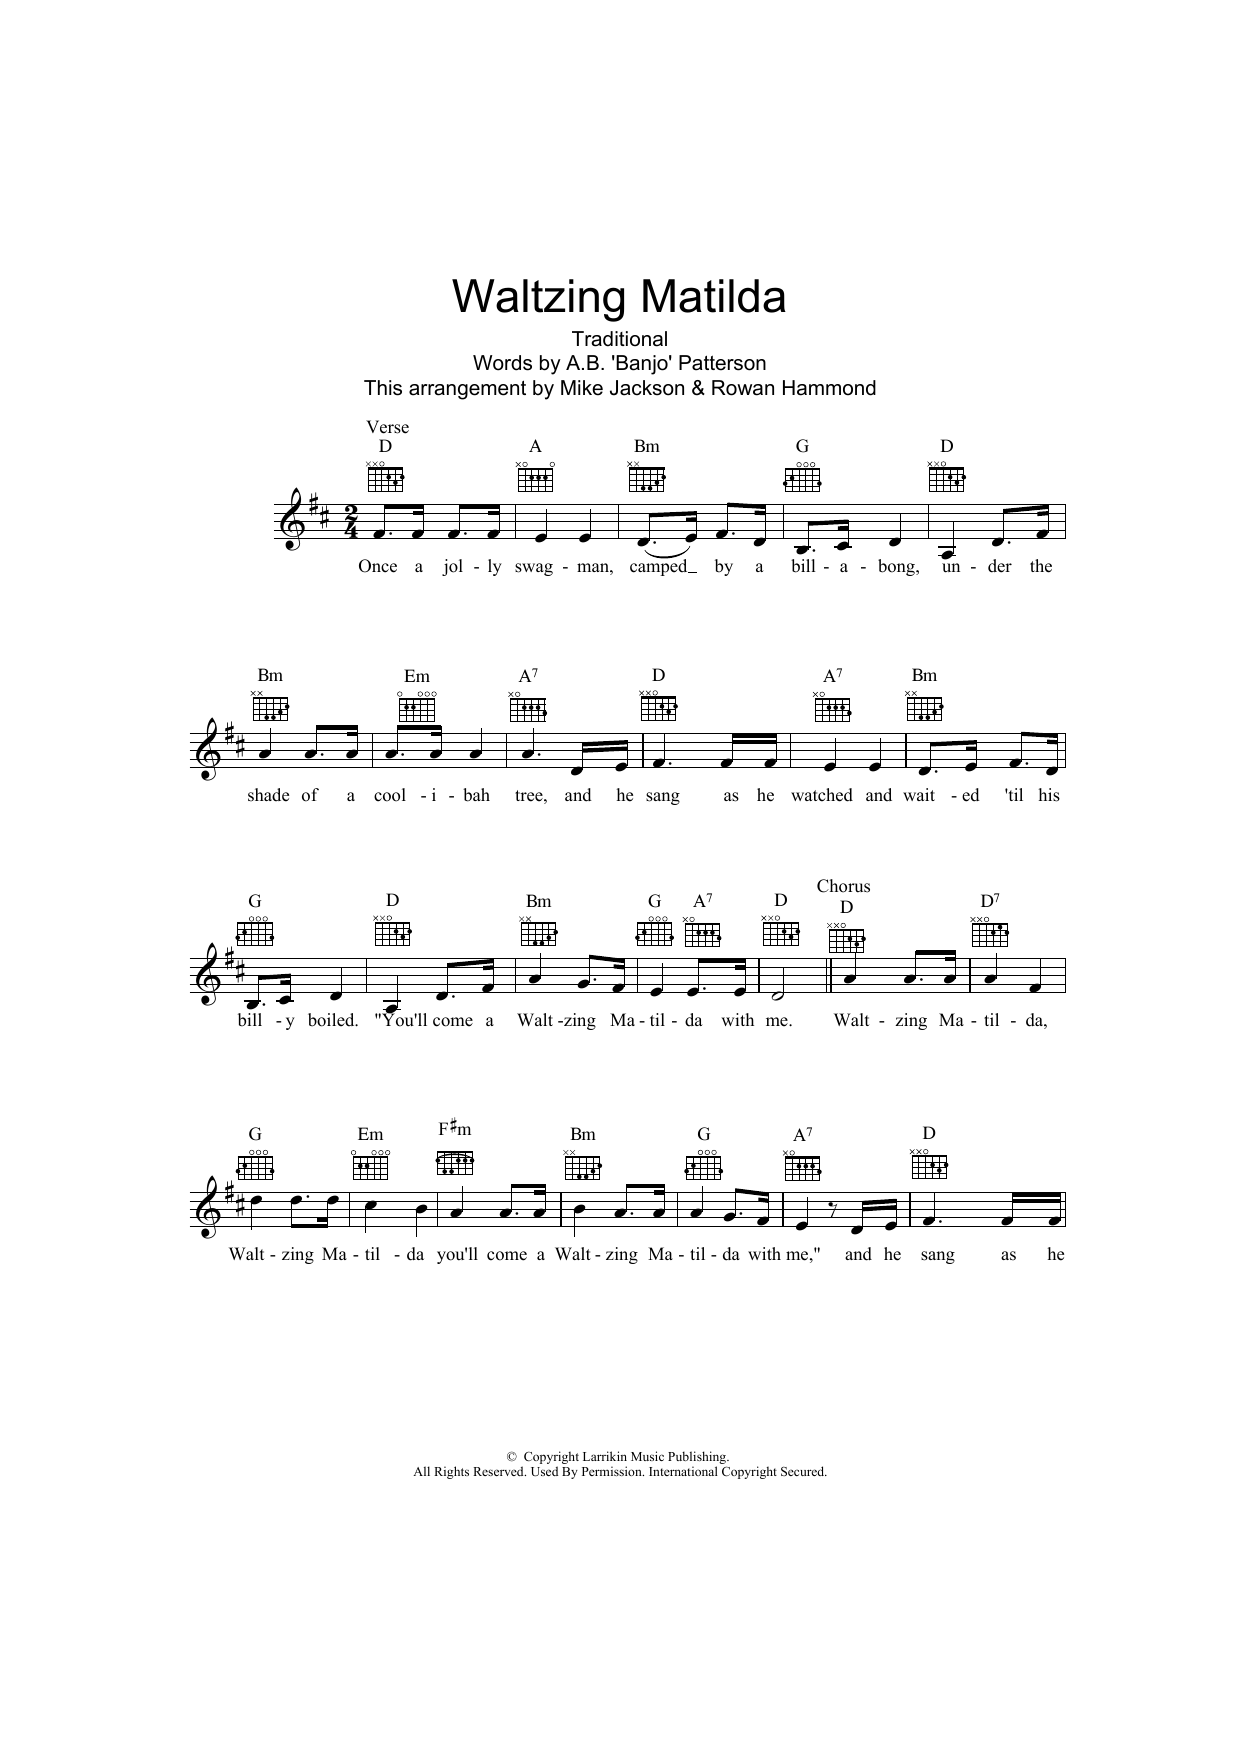 Traditional - Waltzing Matilda